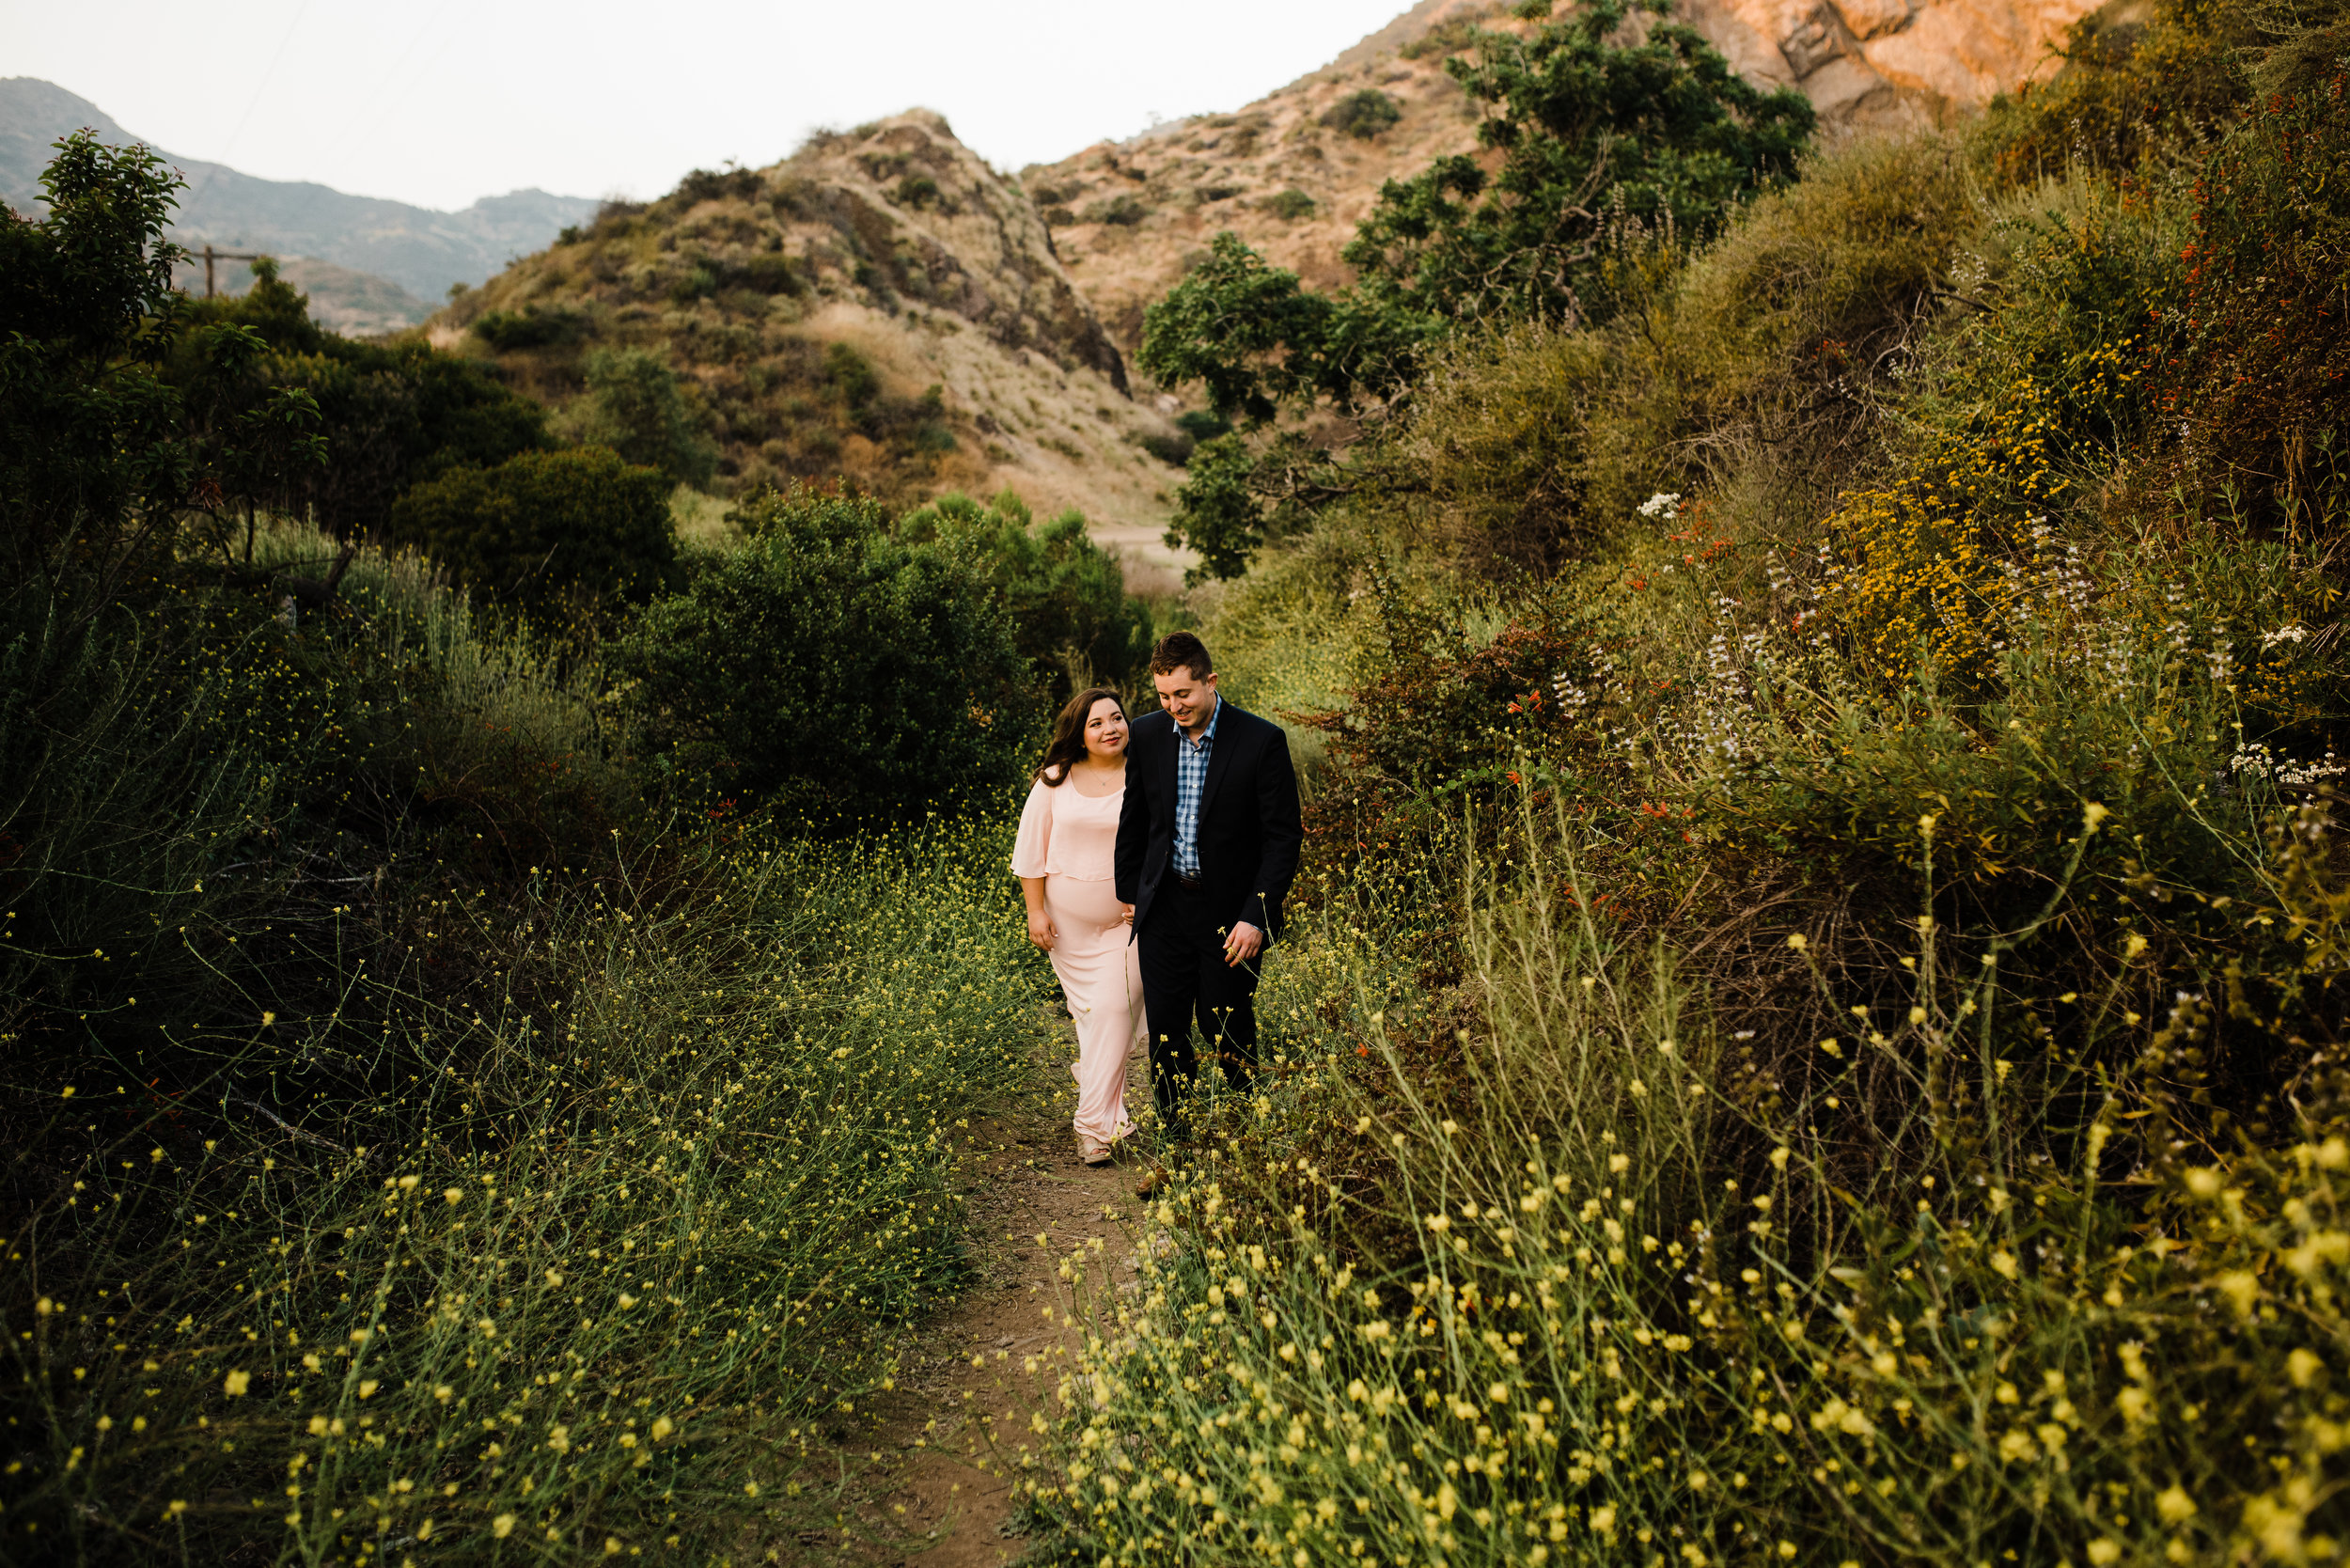 Couple walking through wildflowers and mountains in Los Angeles, California for their adventurous engagement shoot